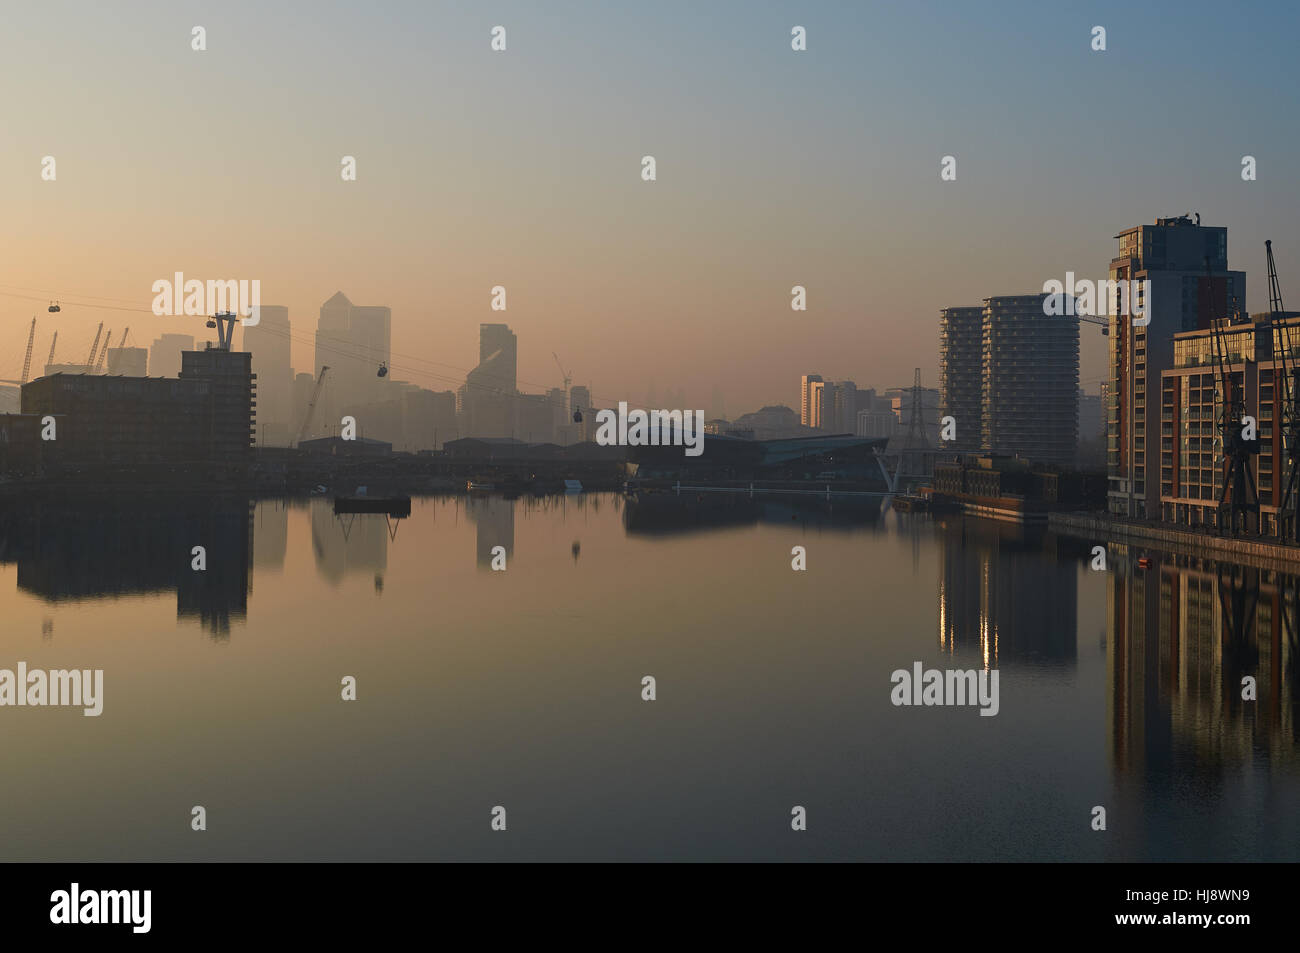 Royal Victoria Dock in January, London UK, looking west towards Canary Wharf - Stock Image